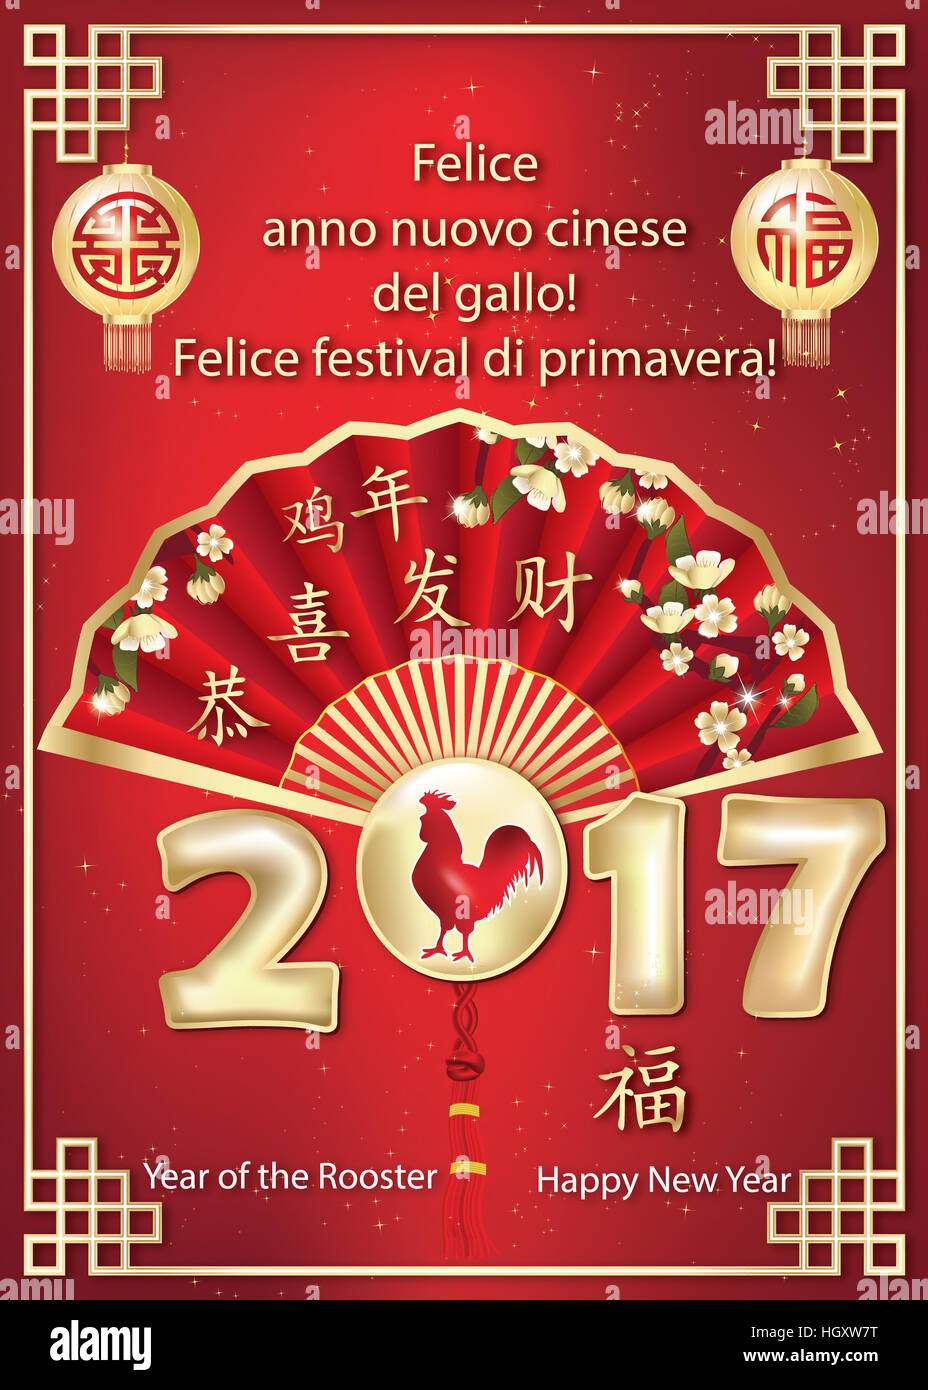 Italian chinese new year greeting card 2017 italian happy new year italian chinese new year greeting card 2017 italian happy new year of the rooster happy spring festival gong xi fa cai m4hsunfo